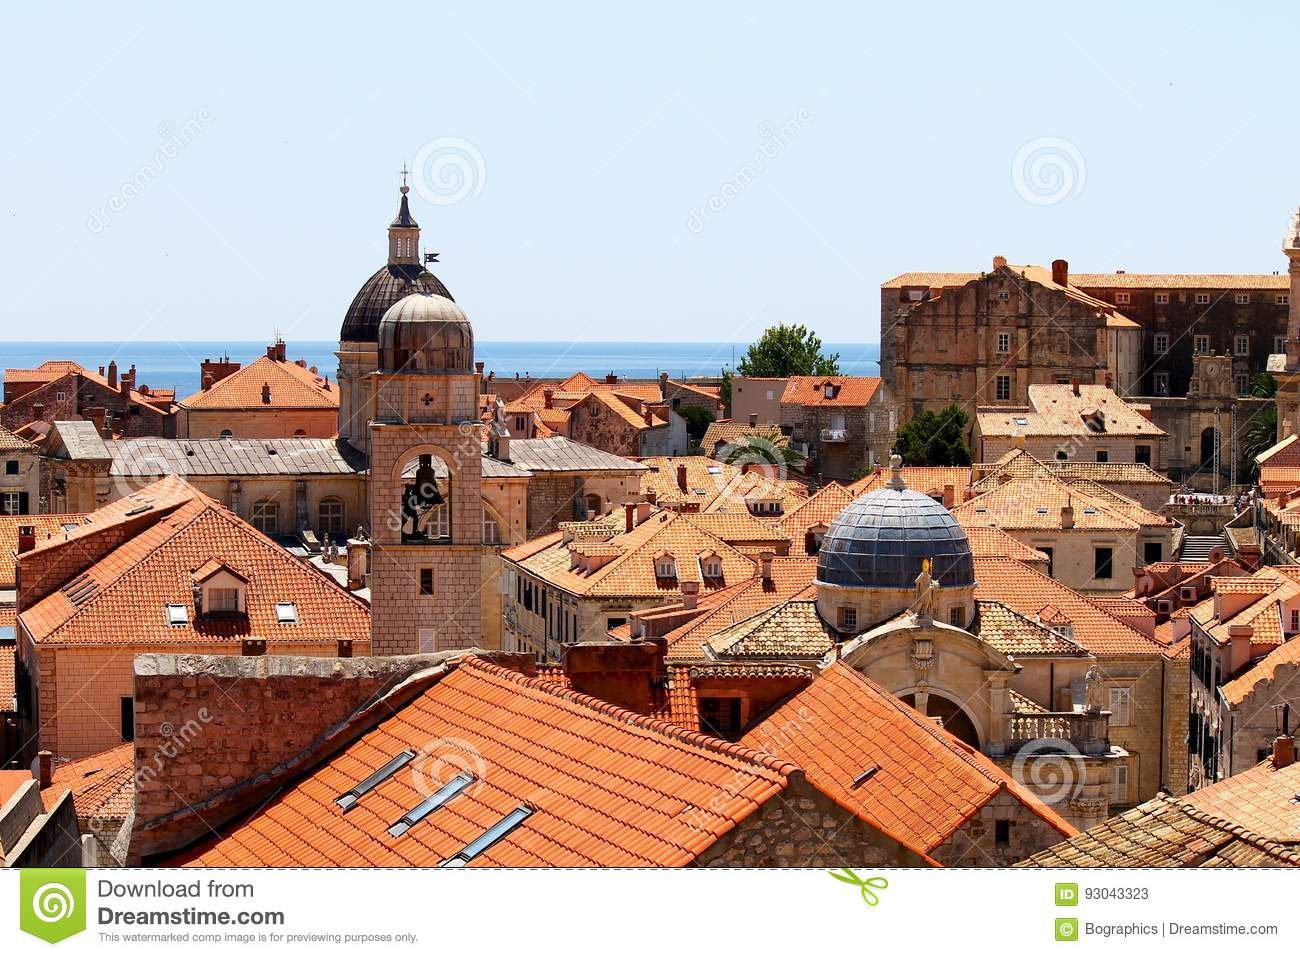 Old town of Dubrovnik near the sea, church towers